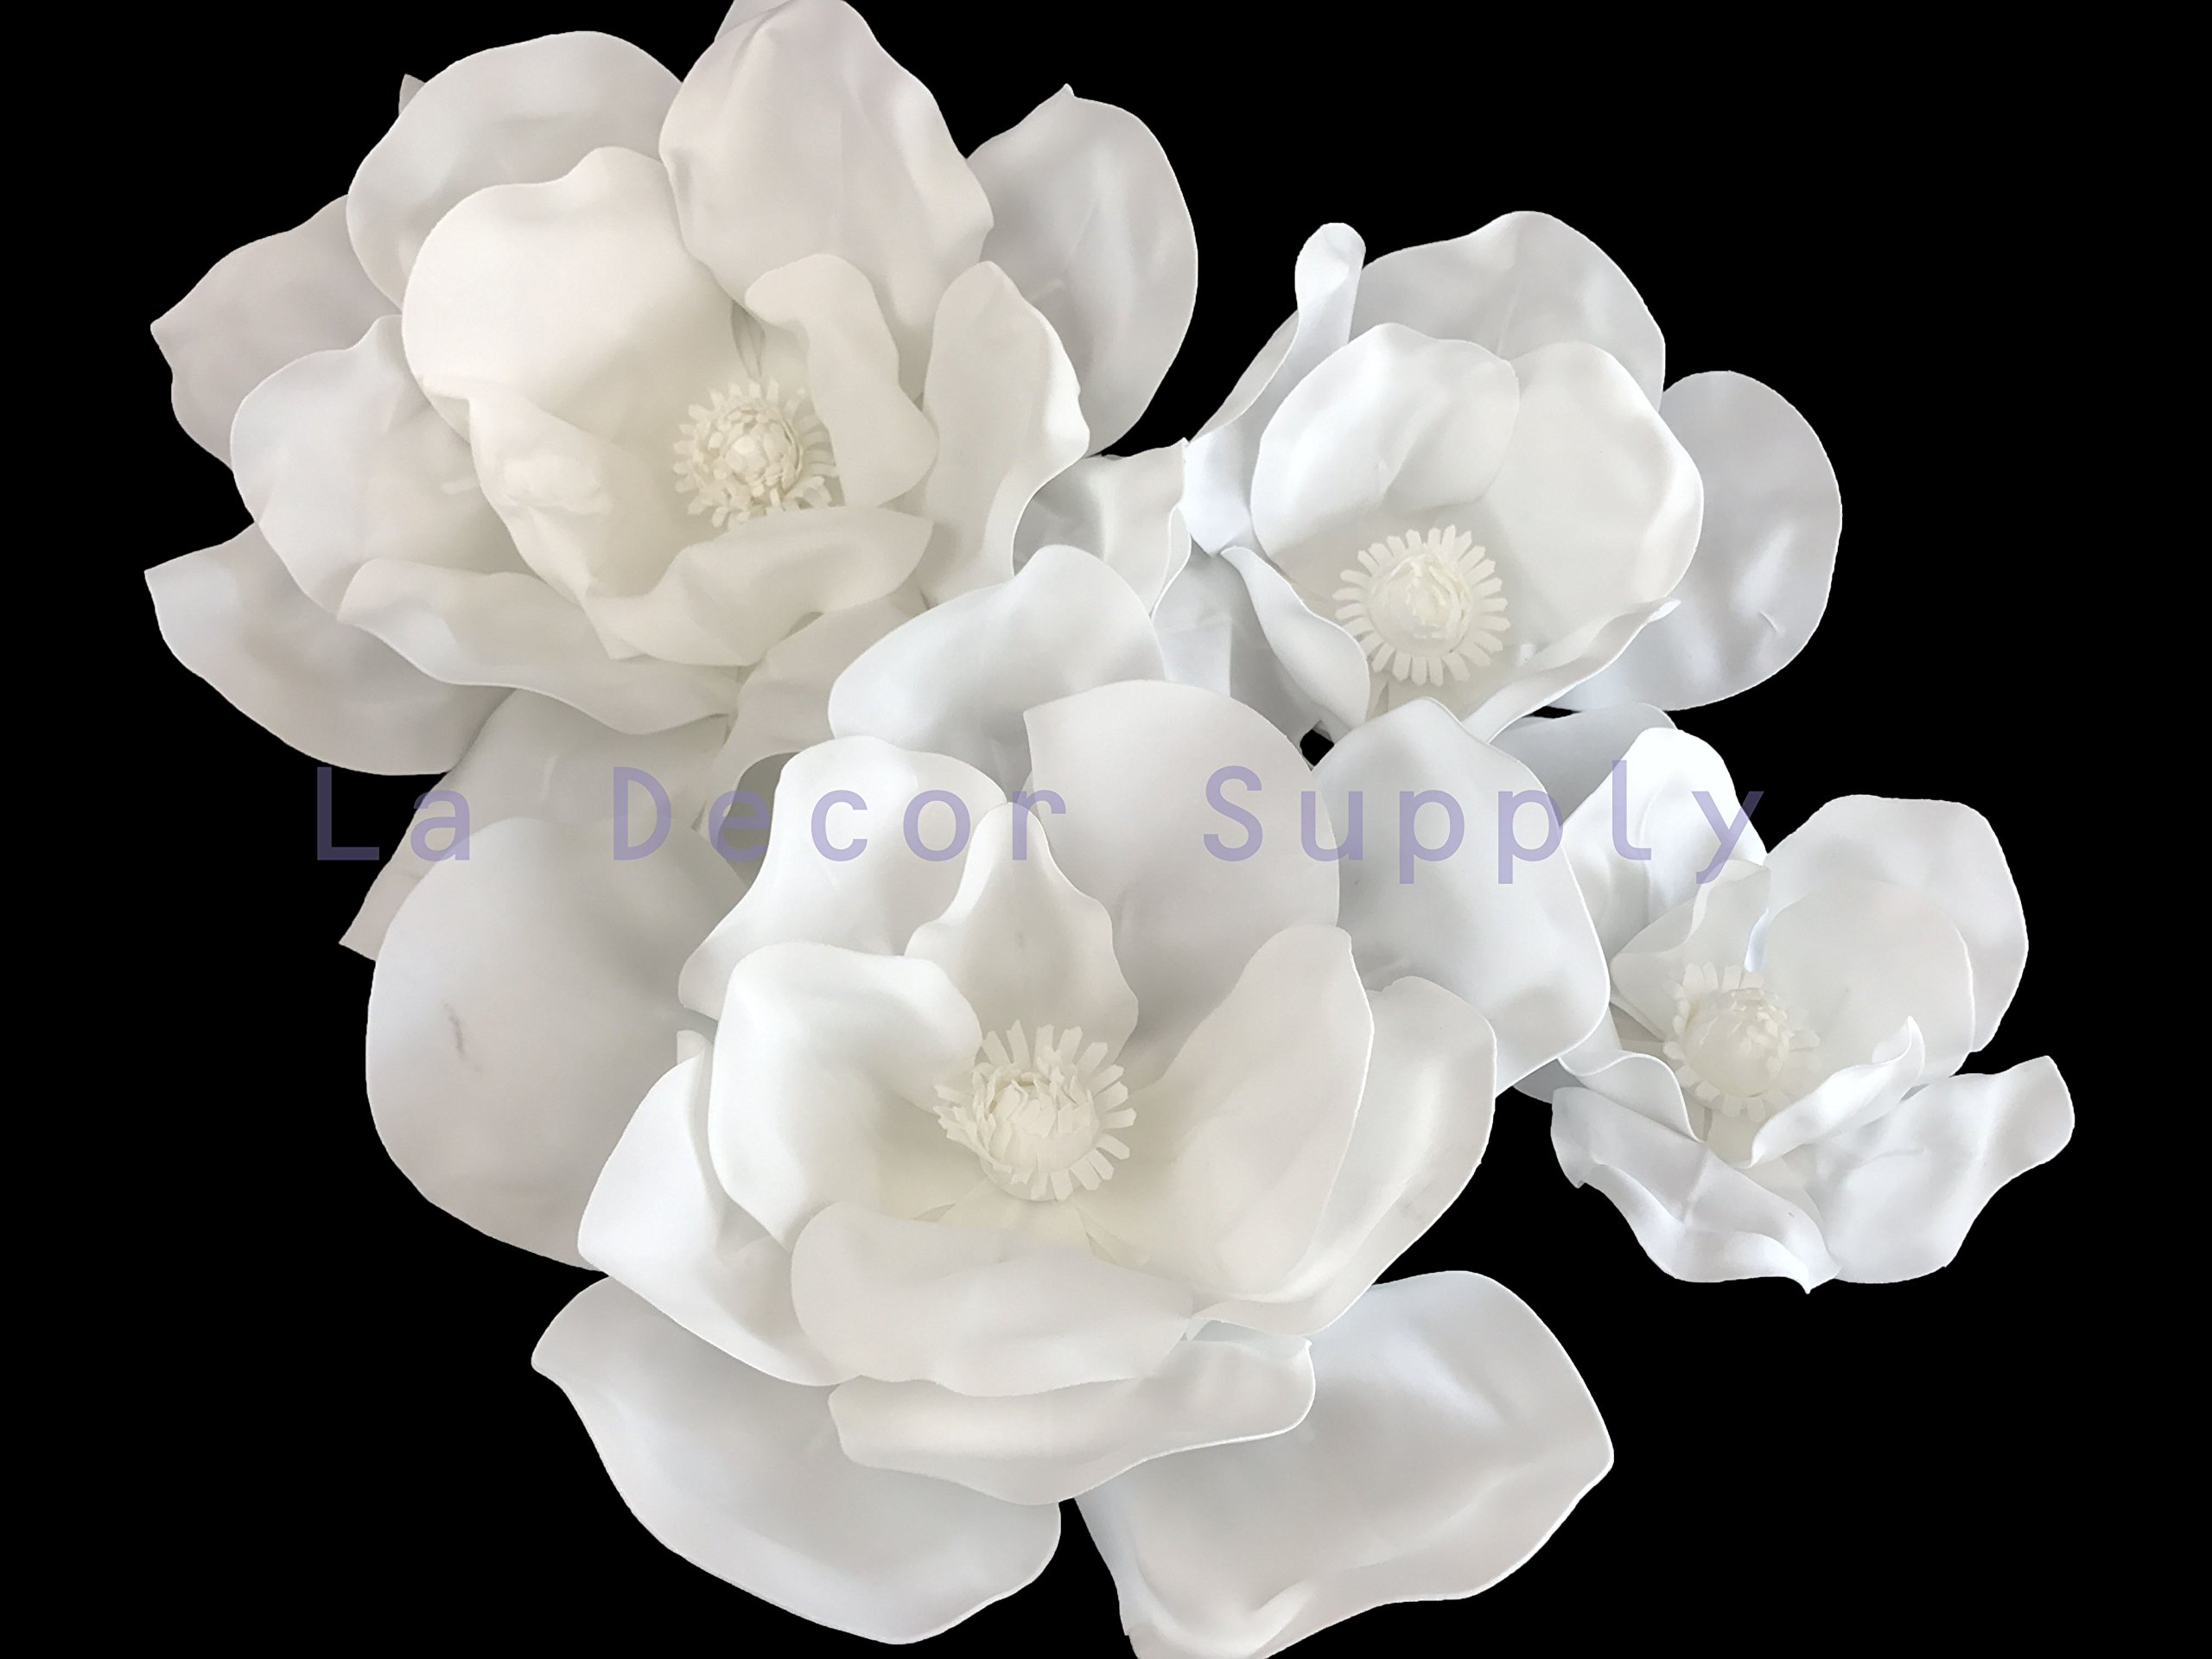 Set of 4 Classic Elegant Giant foam Flowers(FLOATING). Real Touch 3D Artificial Magnolia. Wedding Backdrop, Photo-booth, Backdrop, Nursery, Wall, Archway, Home Decoration Centerpiece (White)